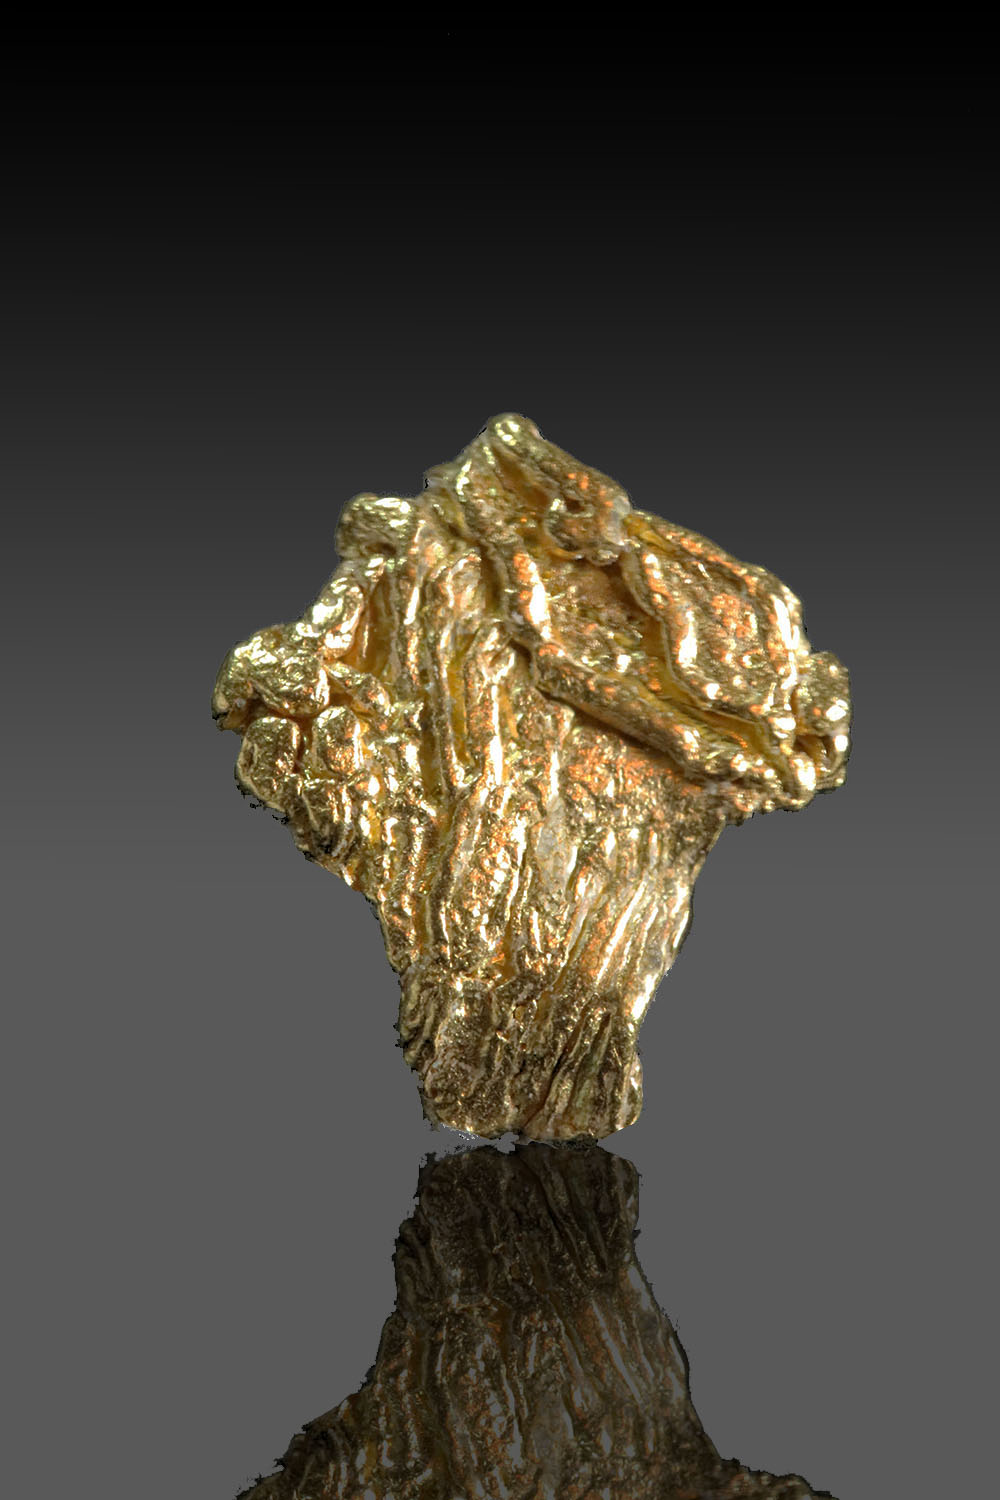 Angled striated gold specimen - Yukon